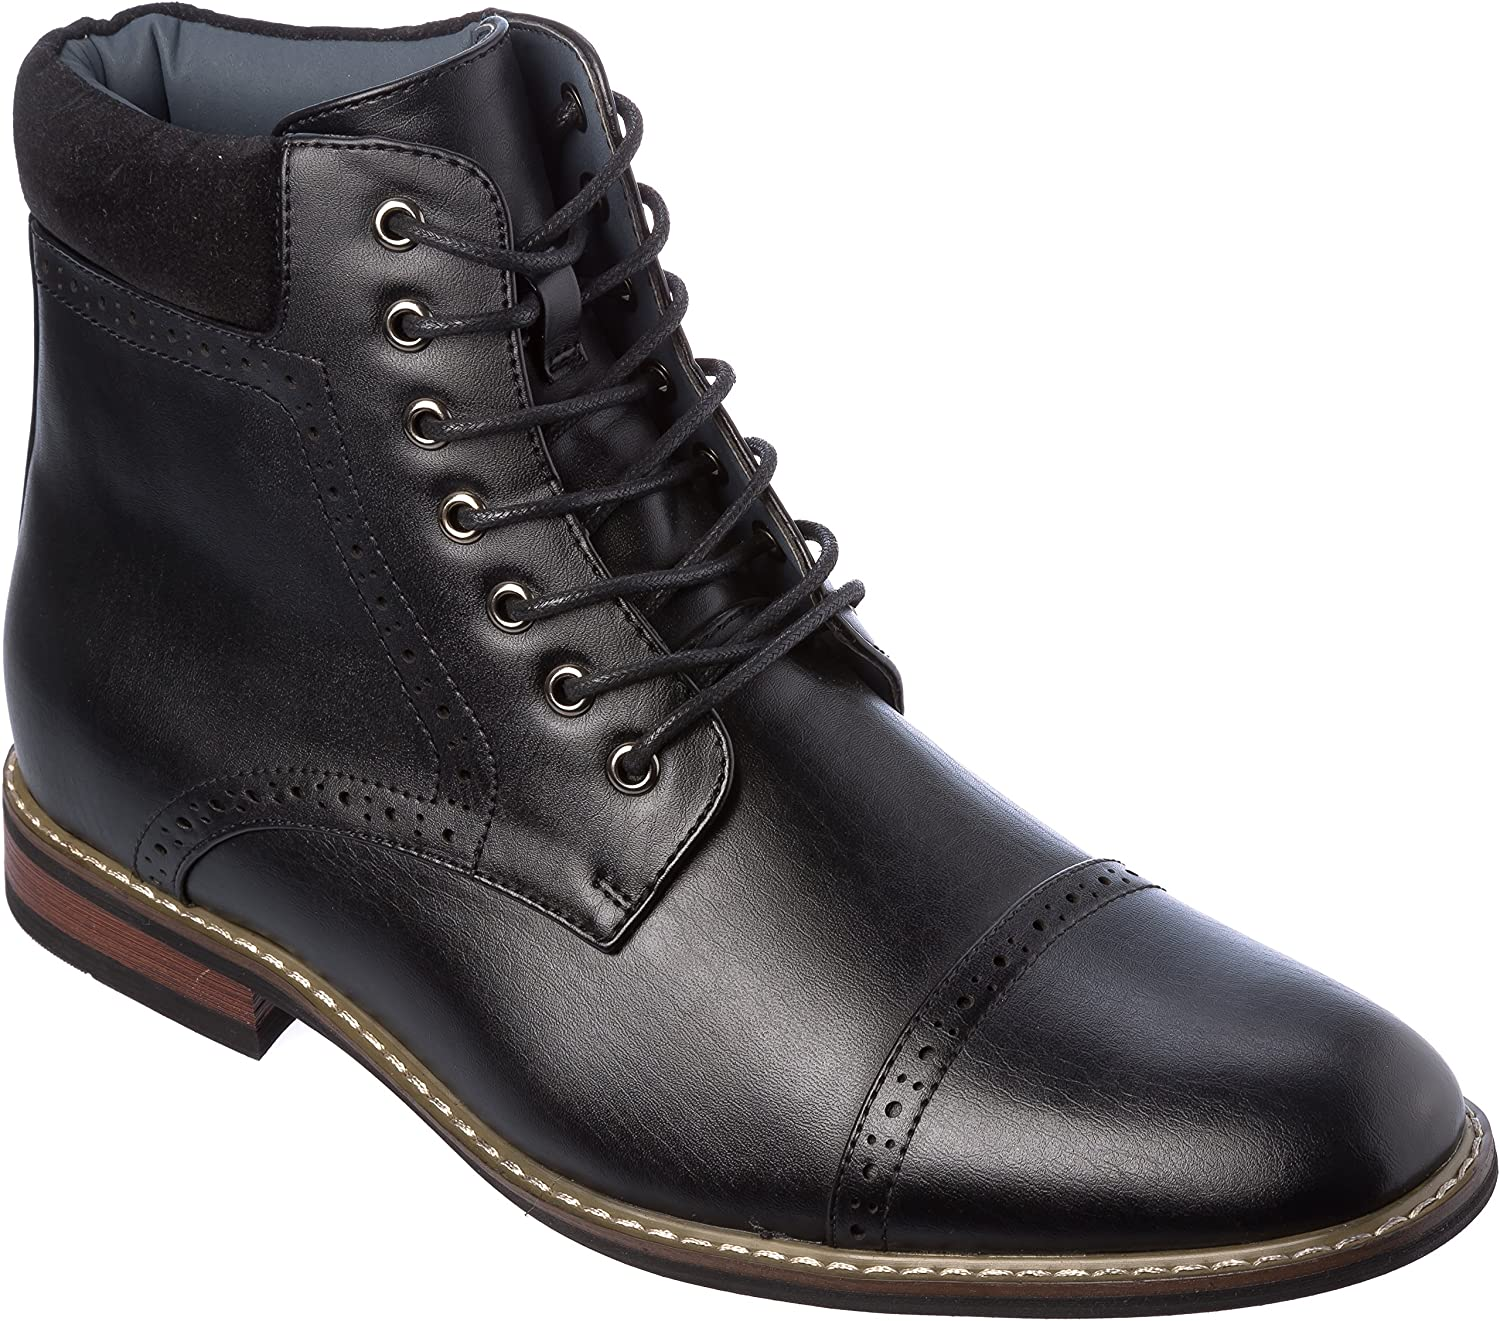 Mens Lace-Up Oxford Boots Dress Shoes ottawa04Black